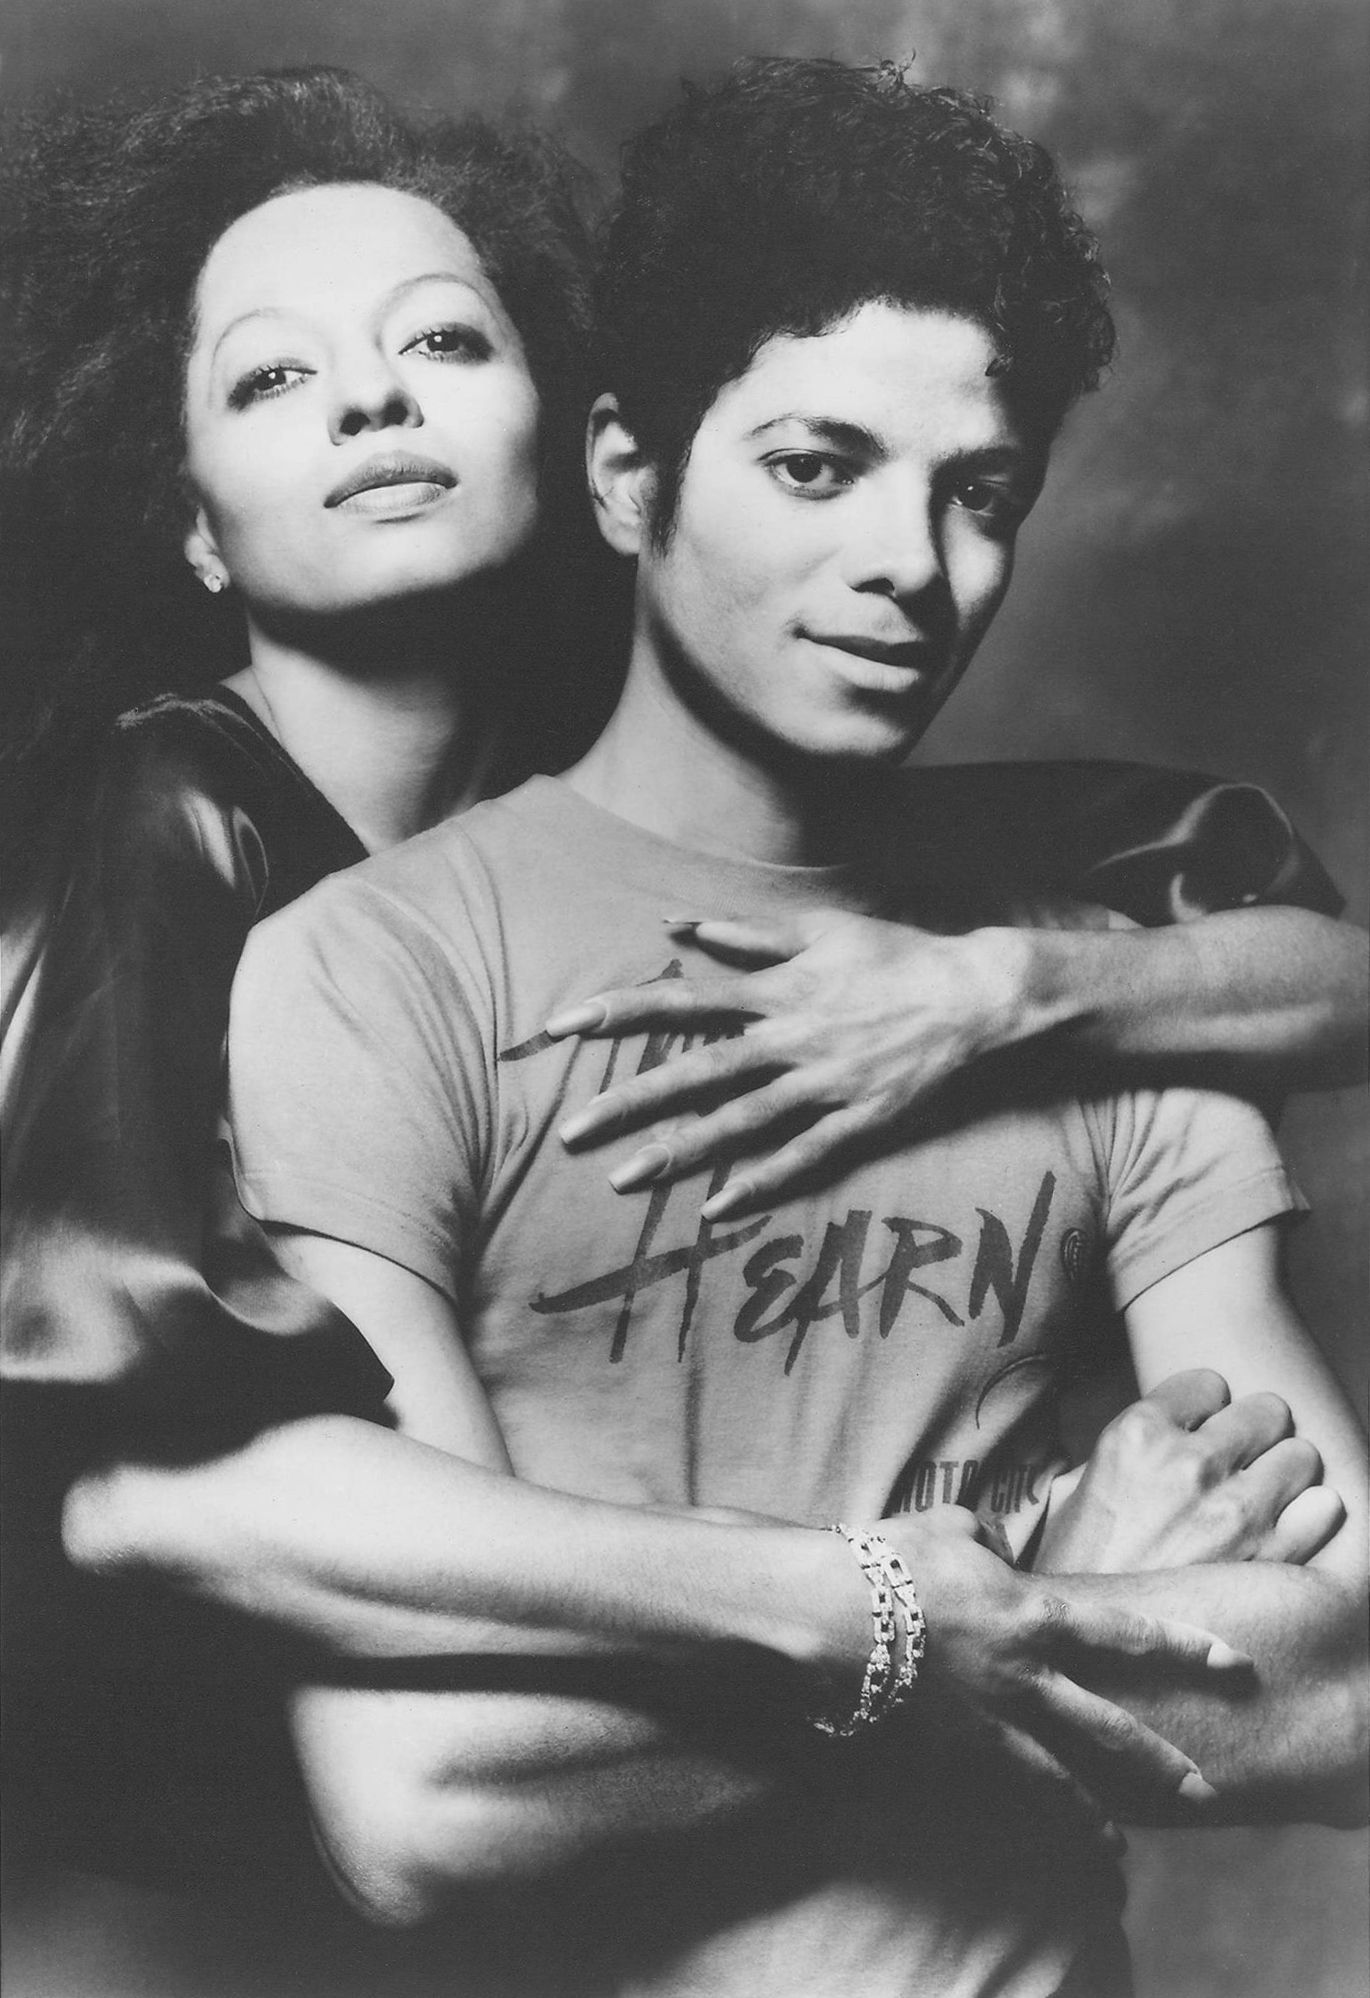 pin by brenda vd kevie on picture perfect michael jackson diana ross micheal jackson pinterest